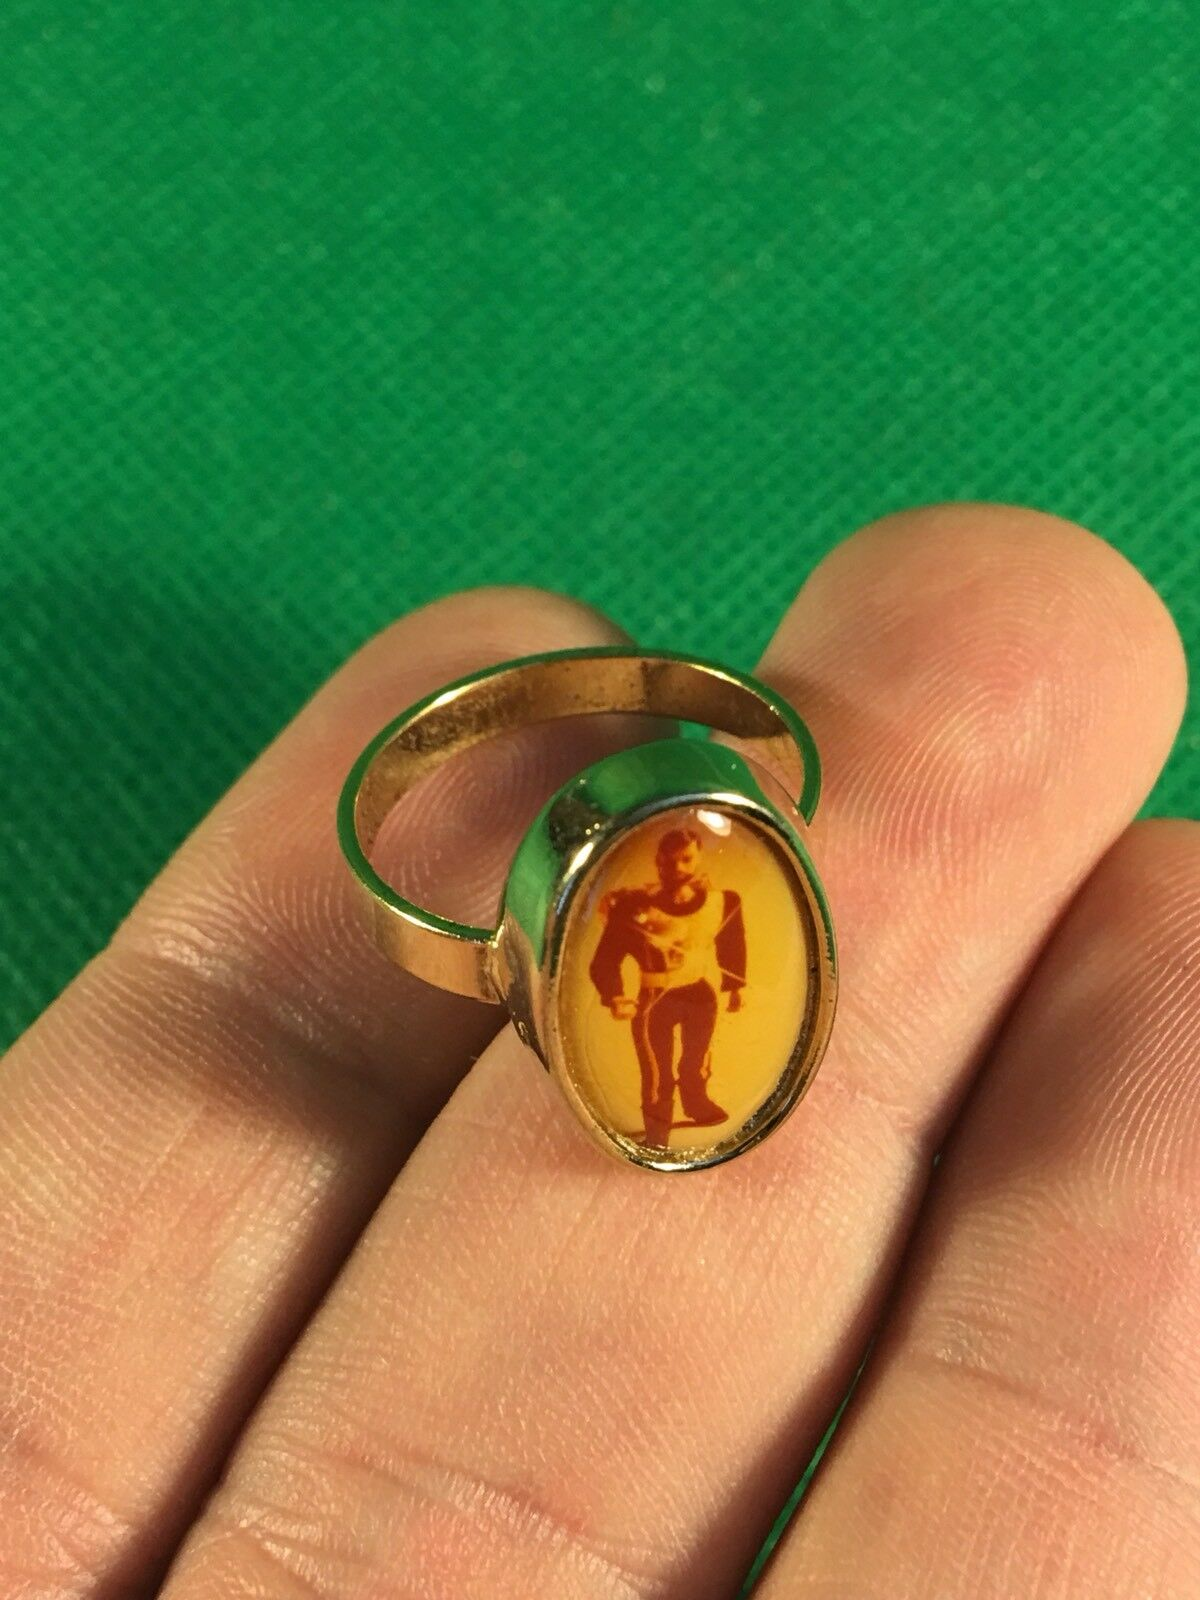 VINTAGE 1964 GI JOE -- 1977 SUPER JOE COMMANDER ADVENTURE TEAM CLUB   gold RING